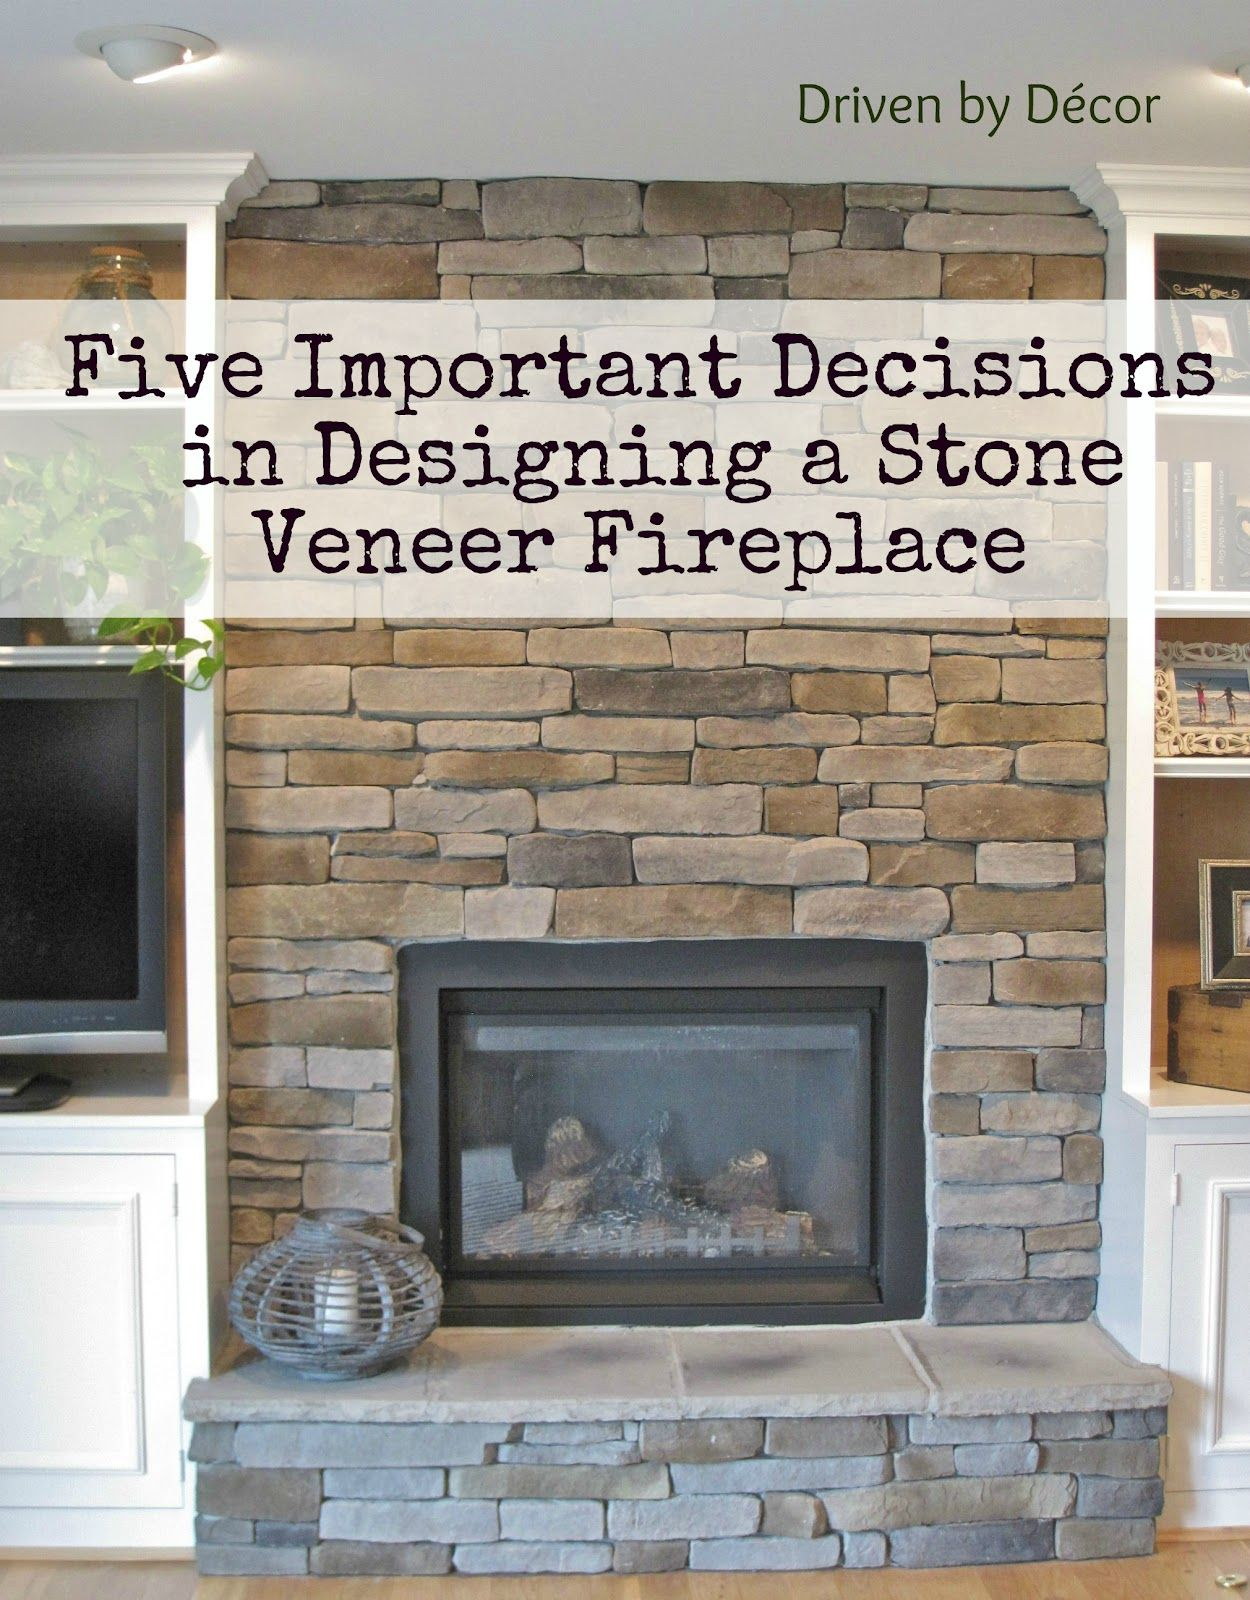 Superieur Five Important Decisions In Designing A Stone Veneer Fireplace   Driven By  Decor